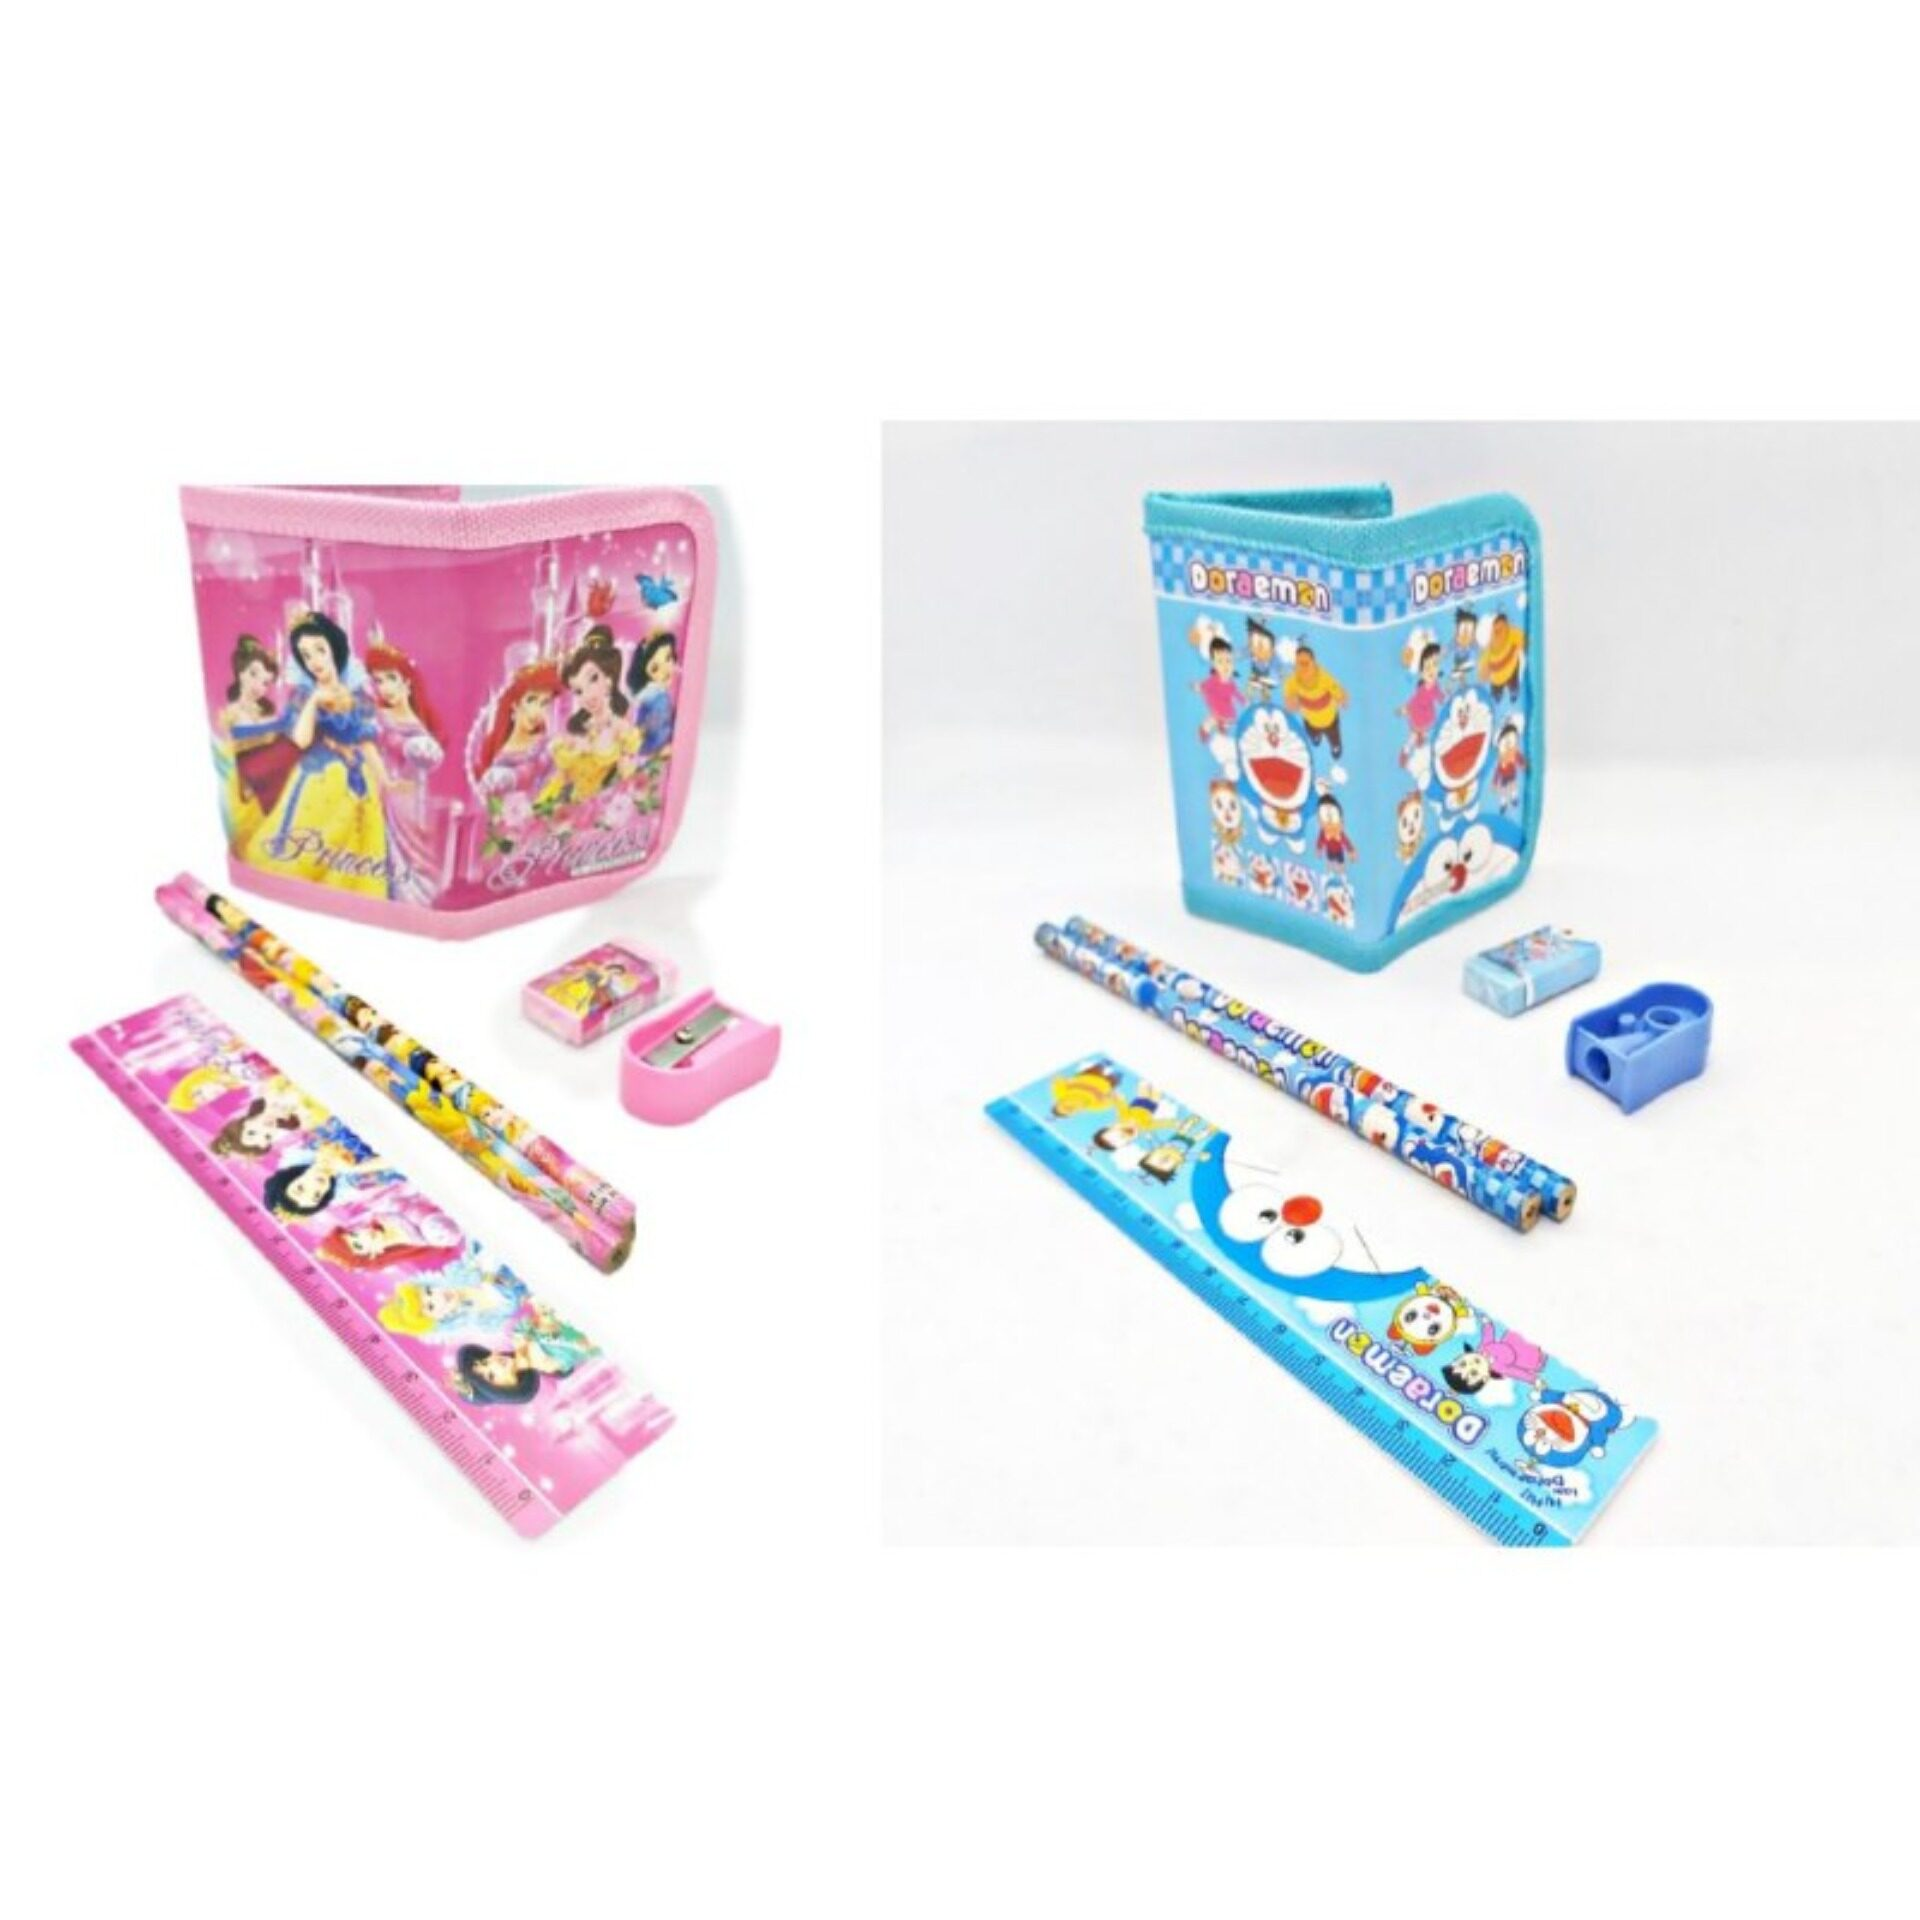 Kids Stationary Set With Wallet